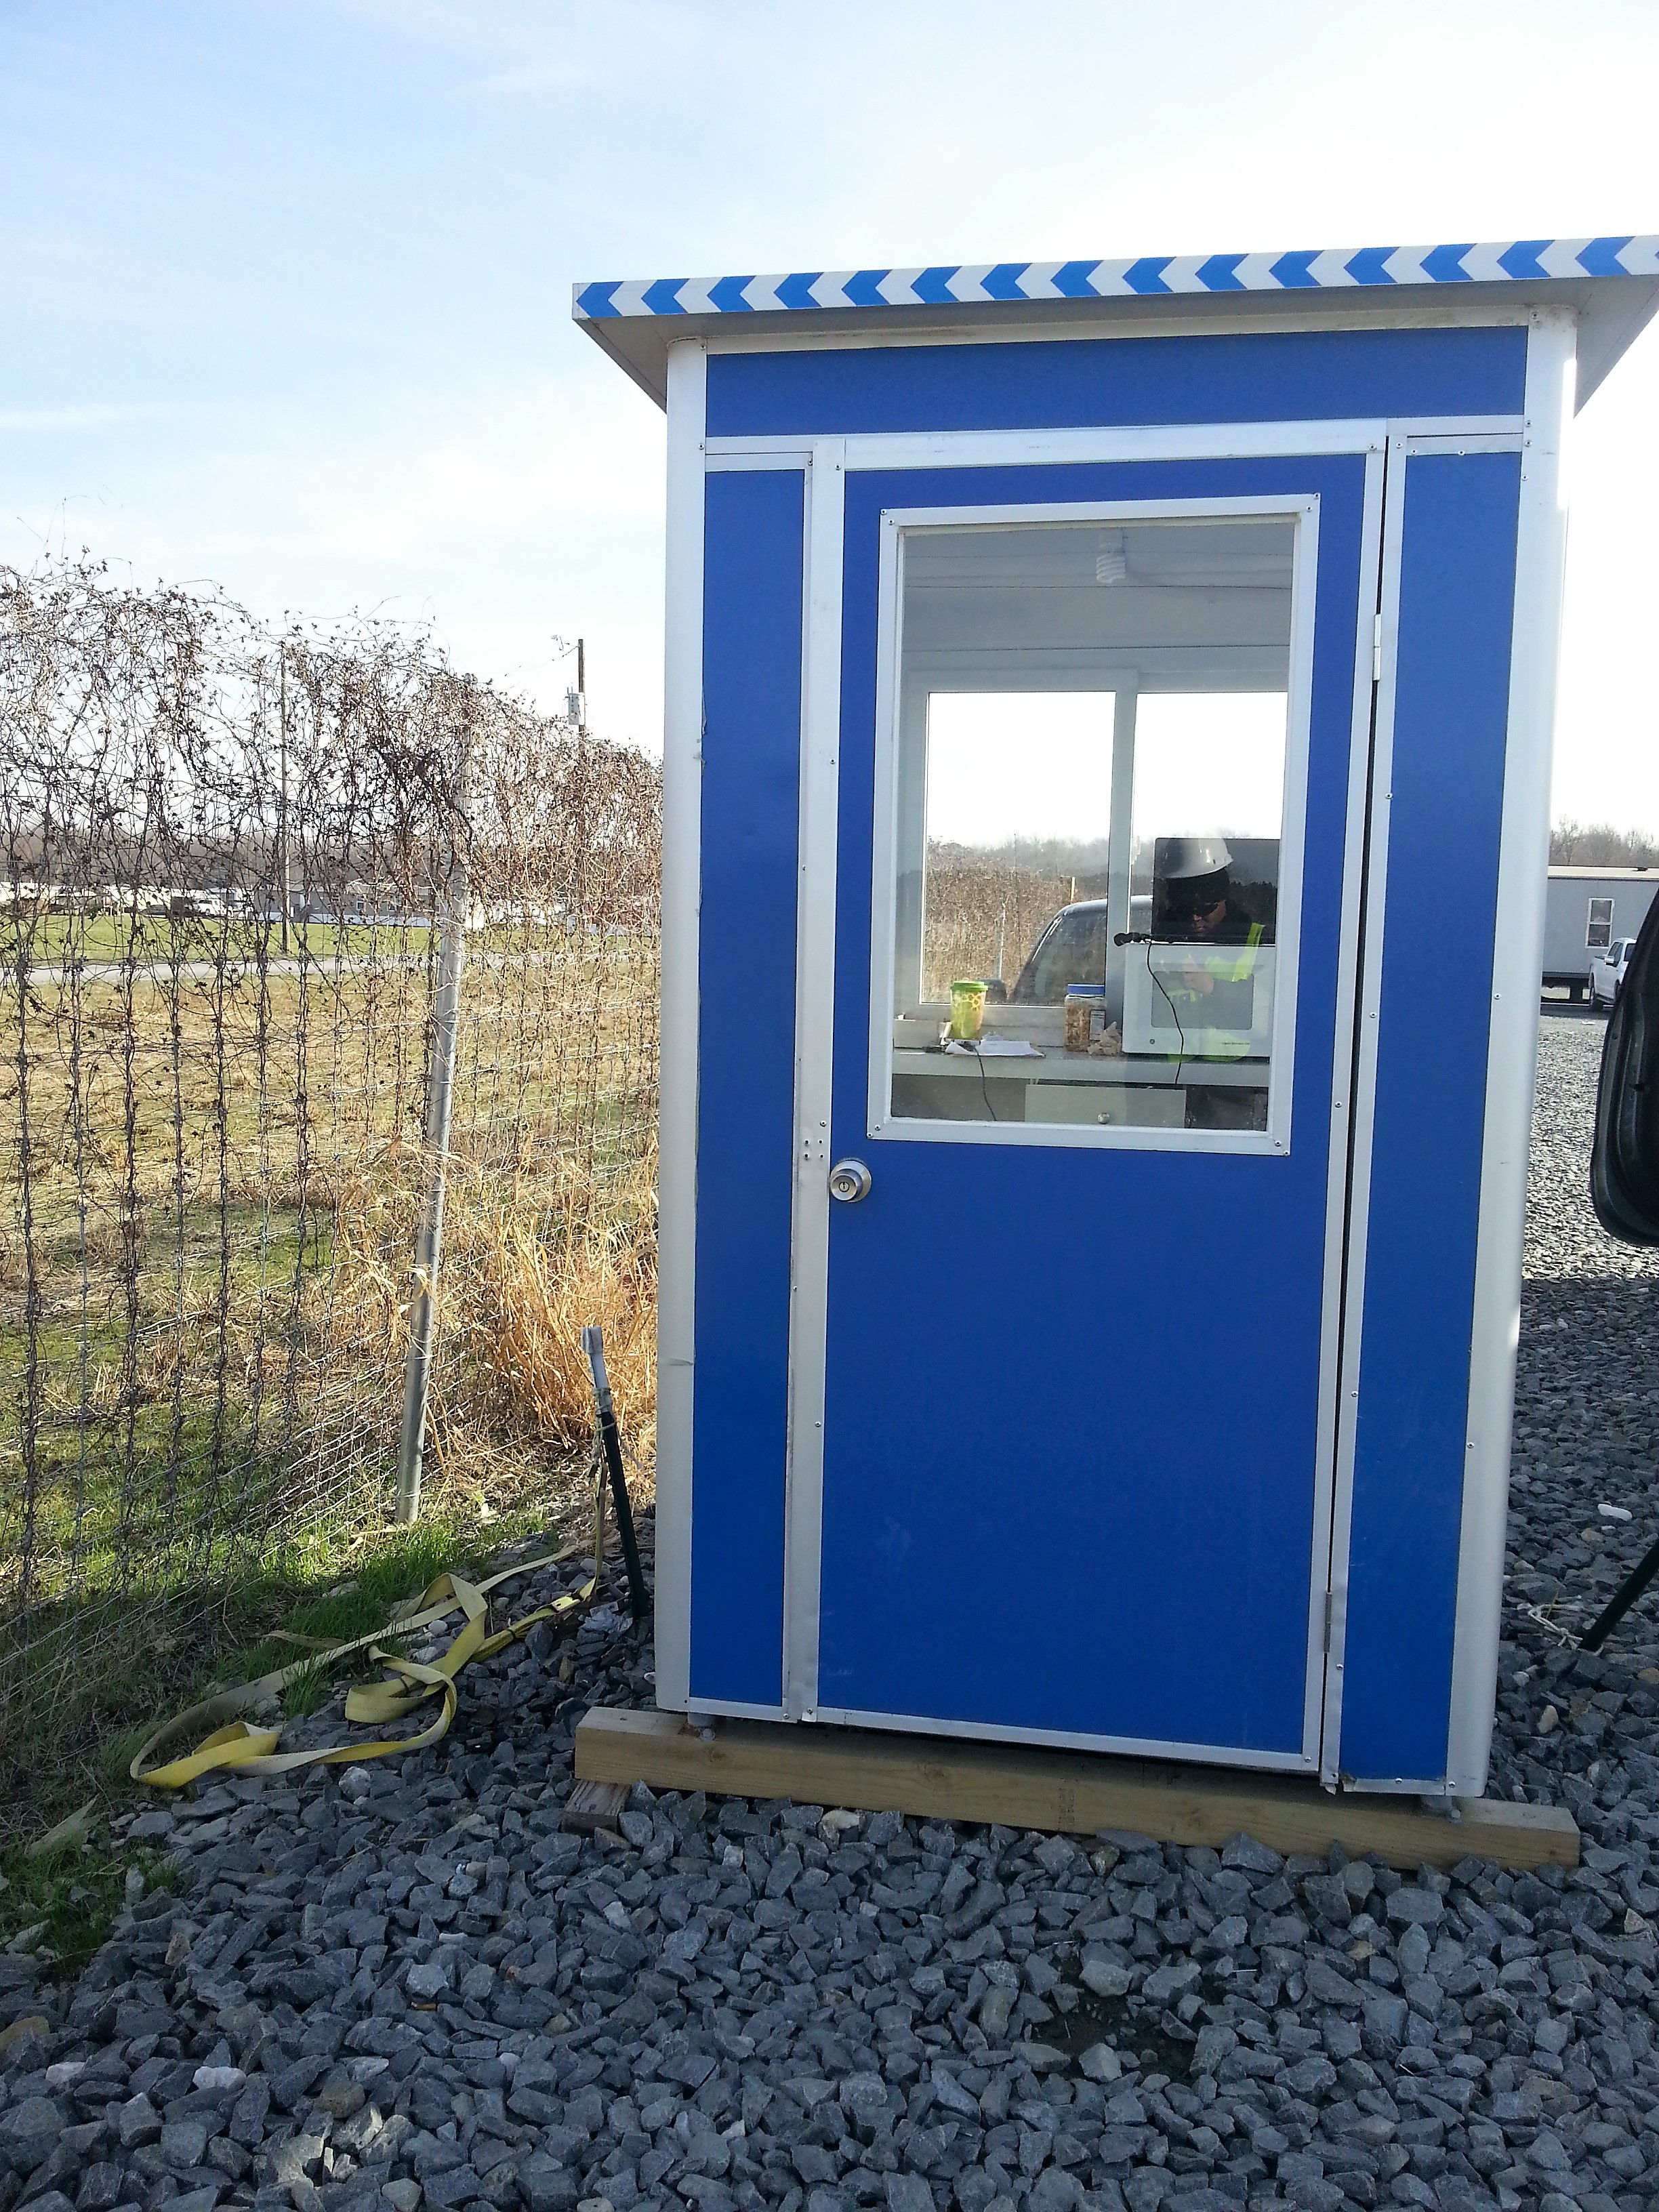 4x6 Security Guard Booth in Oak Hall, VA with Swing Door, Sliding Windows, Built-in AC, Baseboard Heaters, and Breaker Panel Box